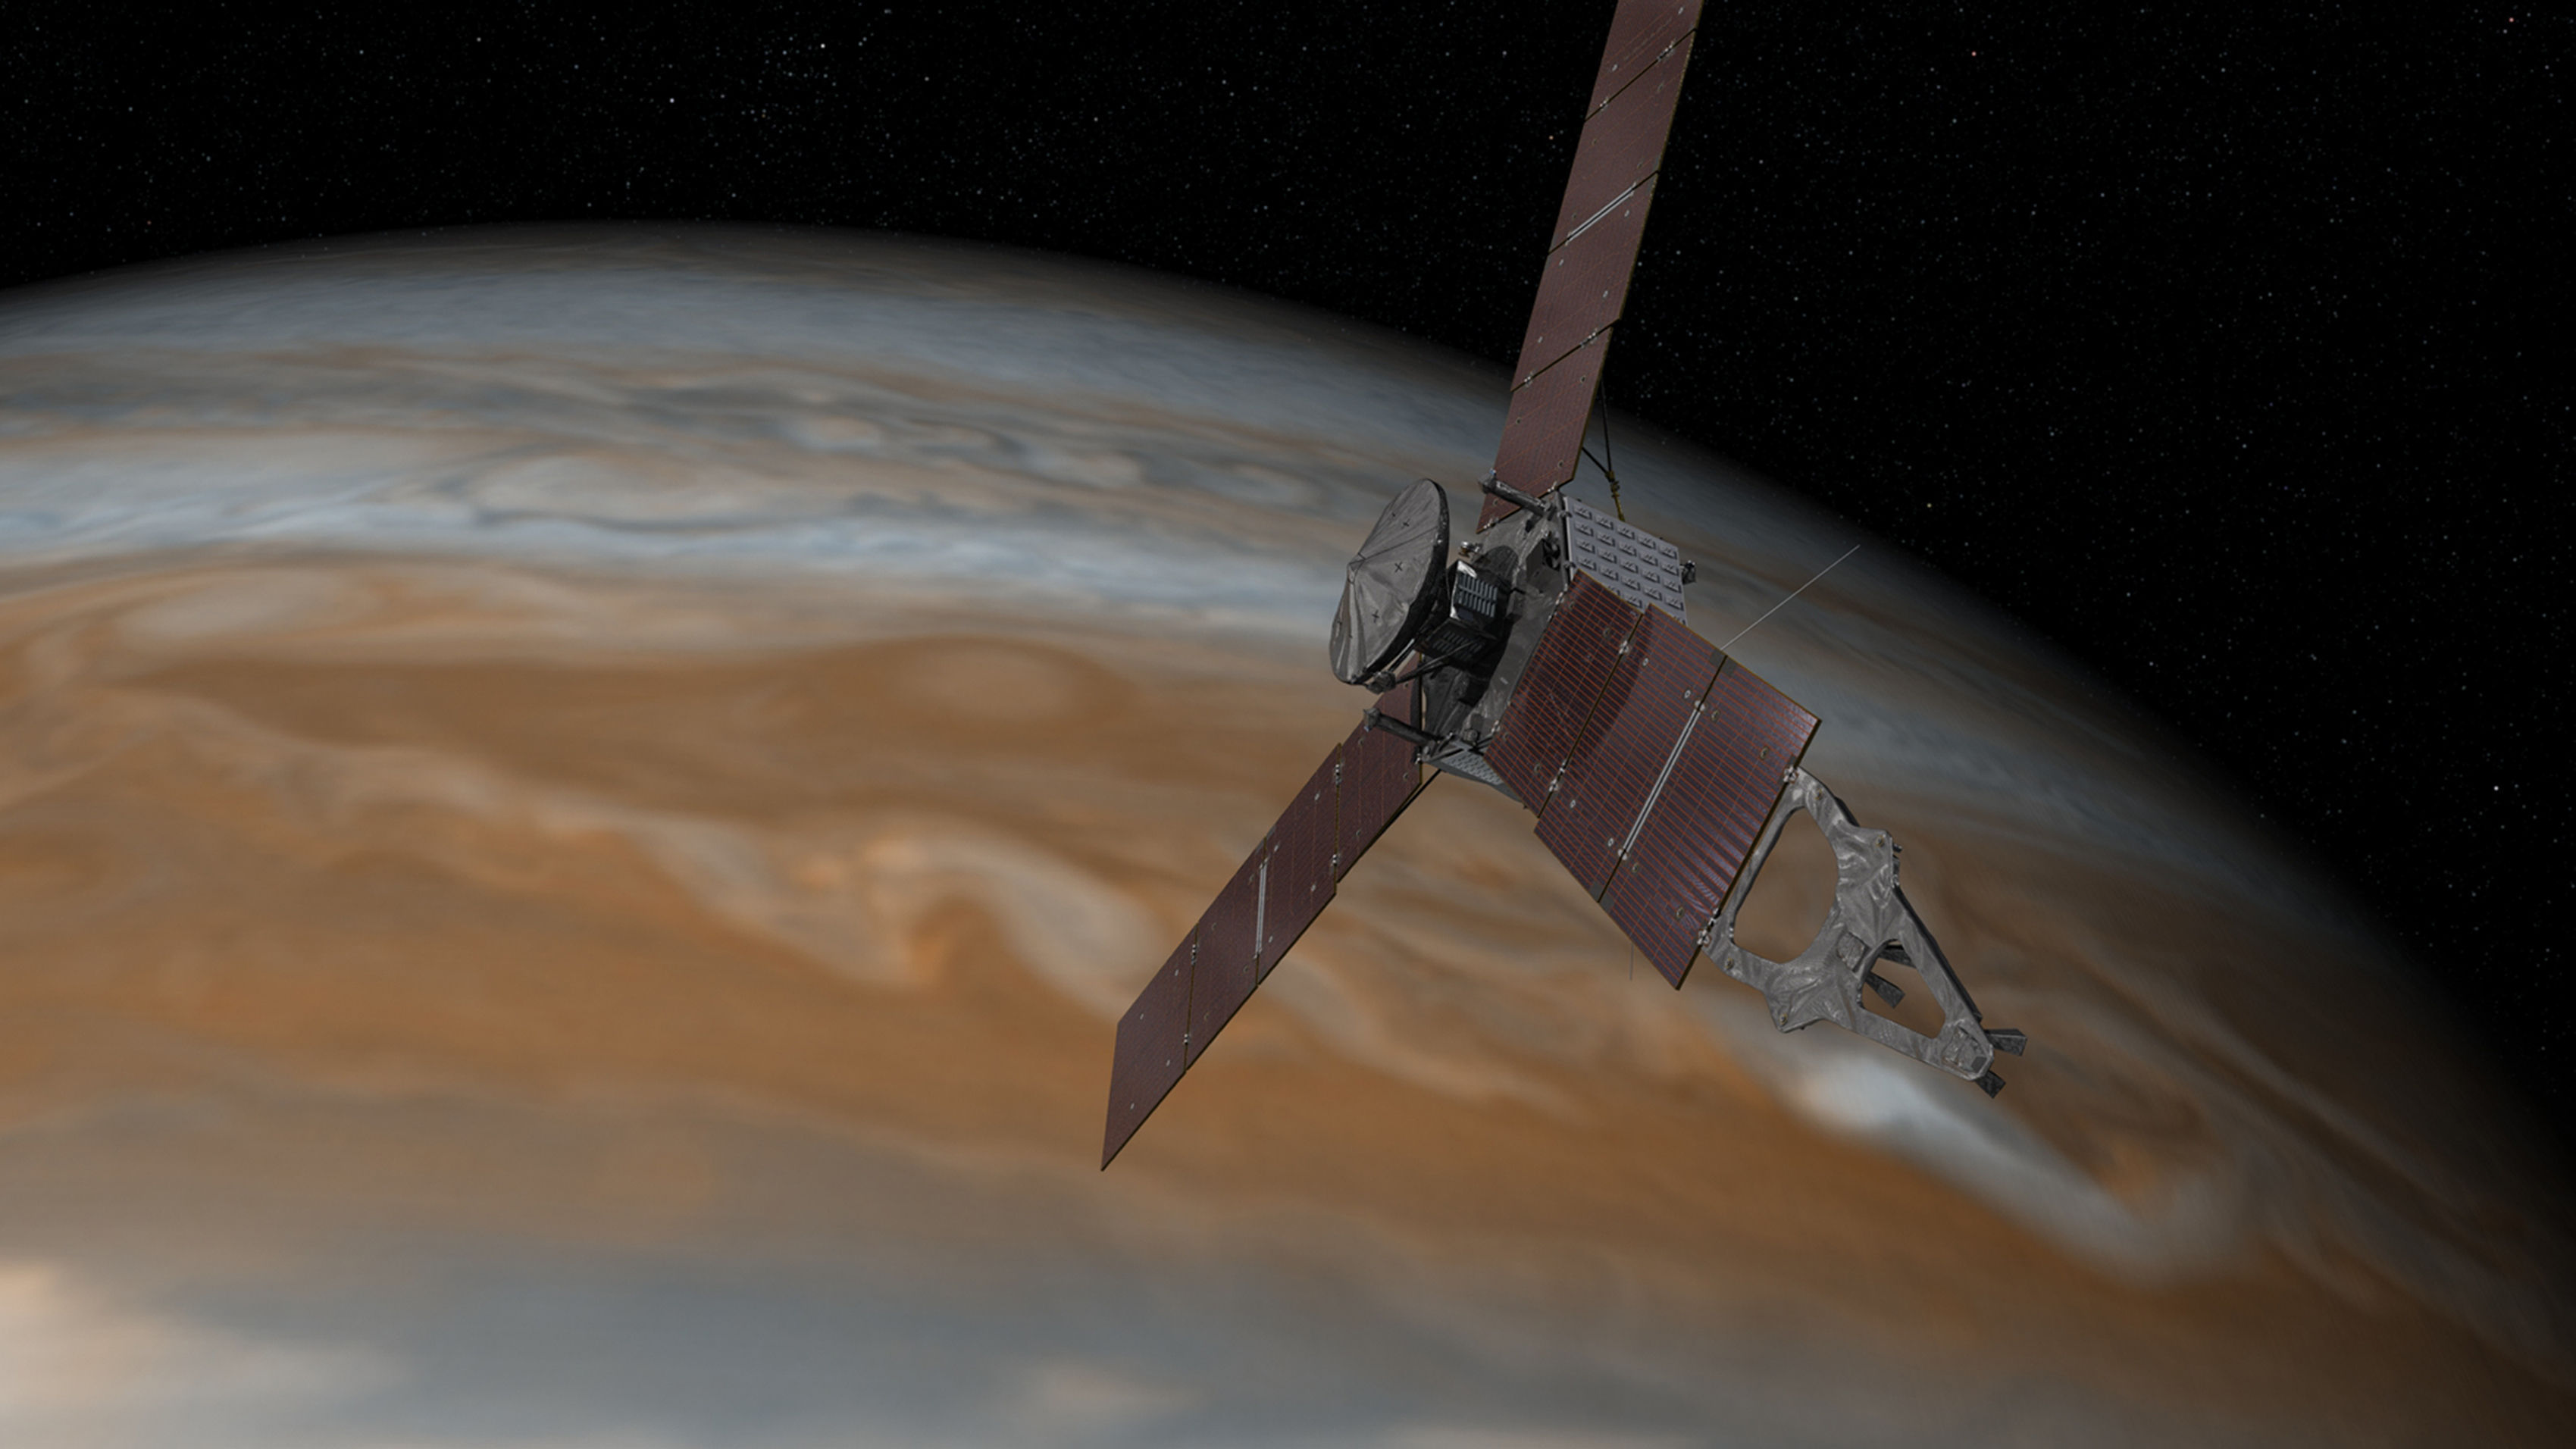 Artist's impression issued by NASA of the Juno spacecraft approaching Jupiter